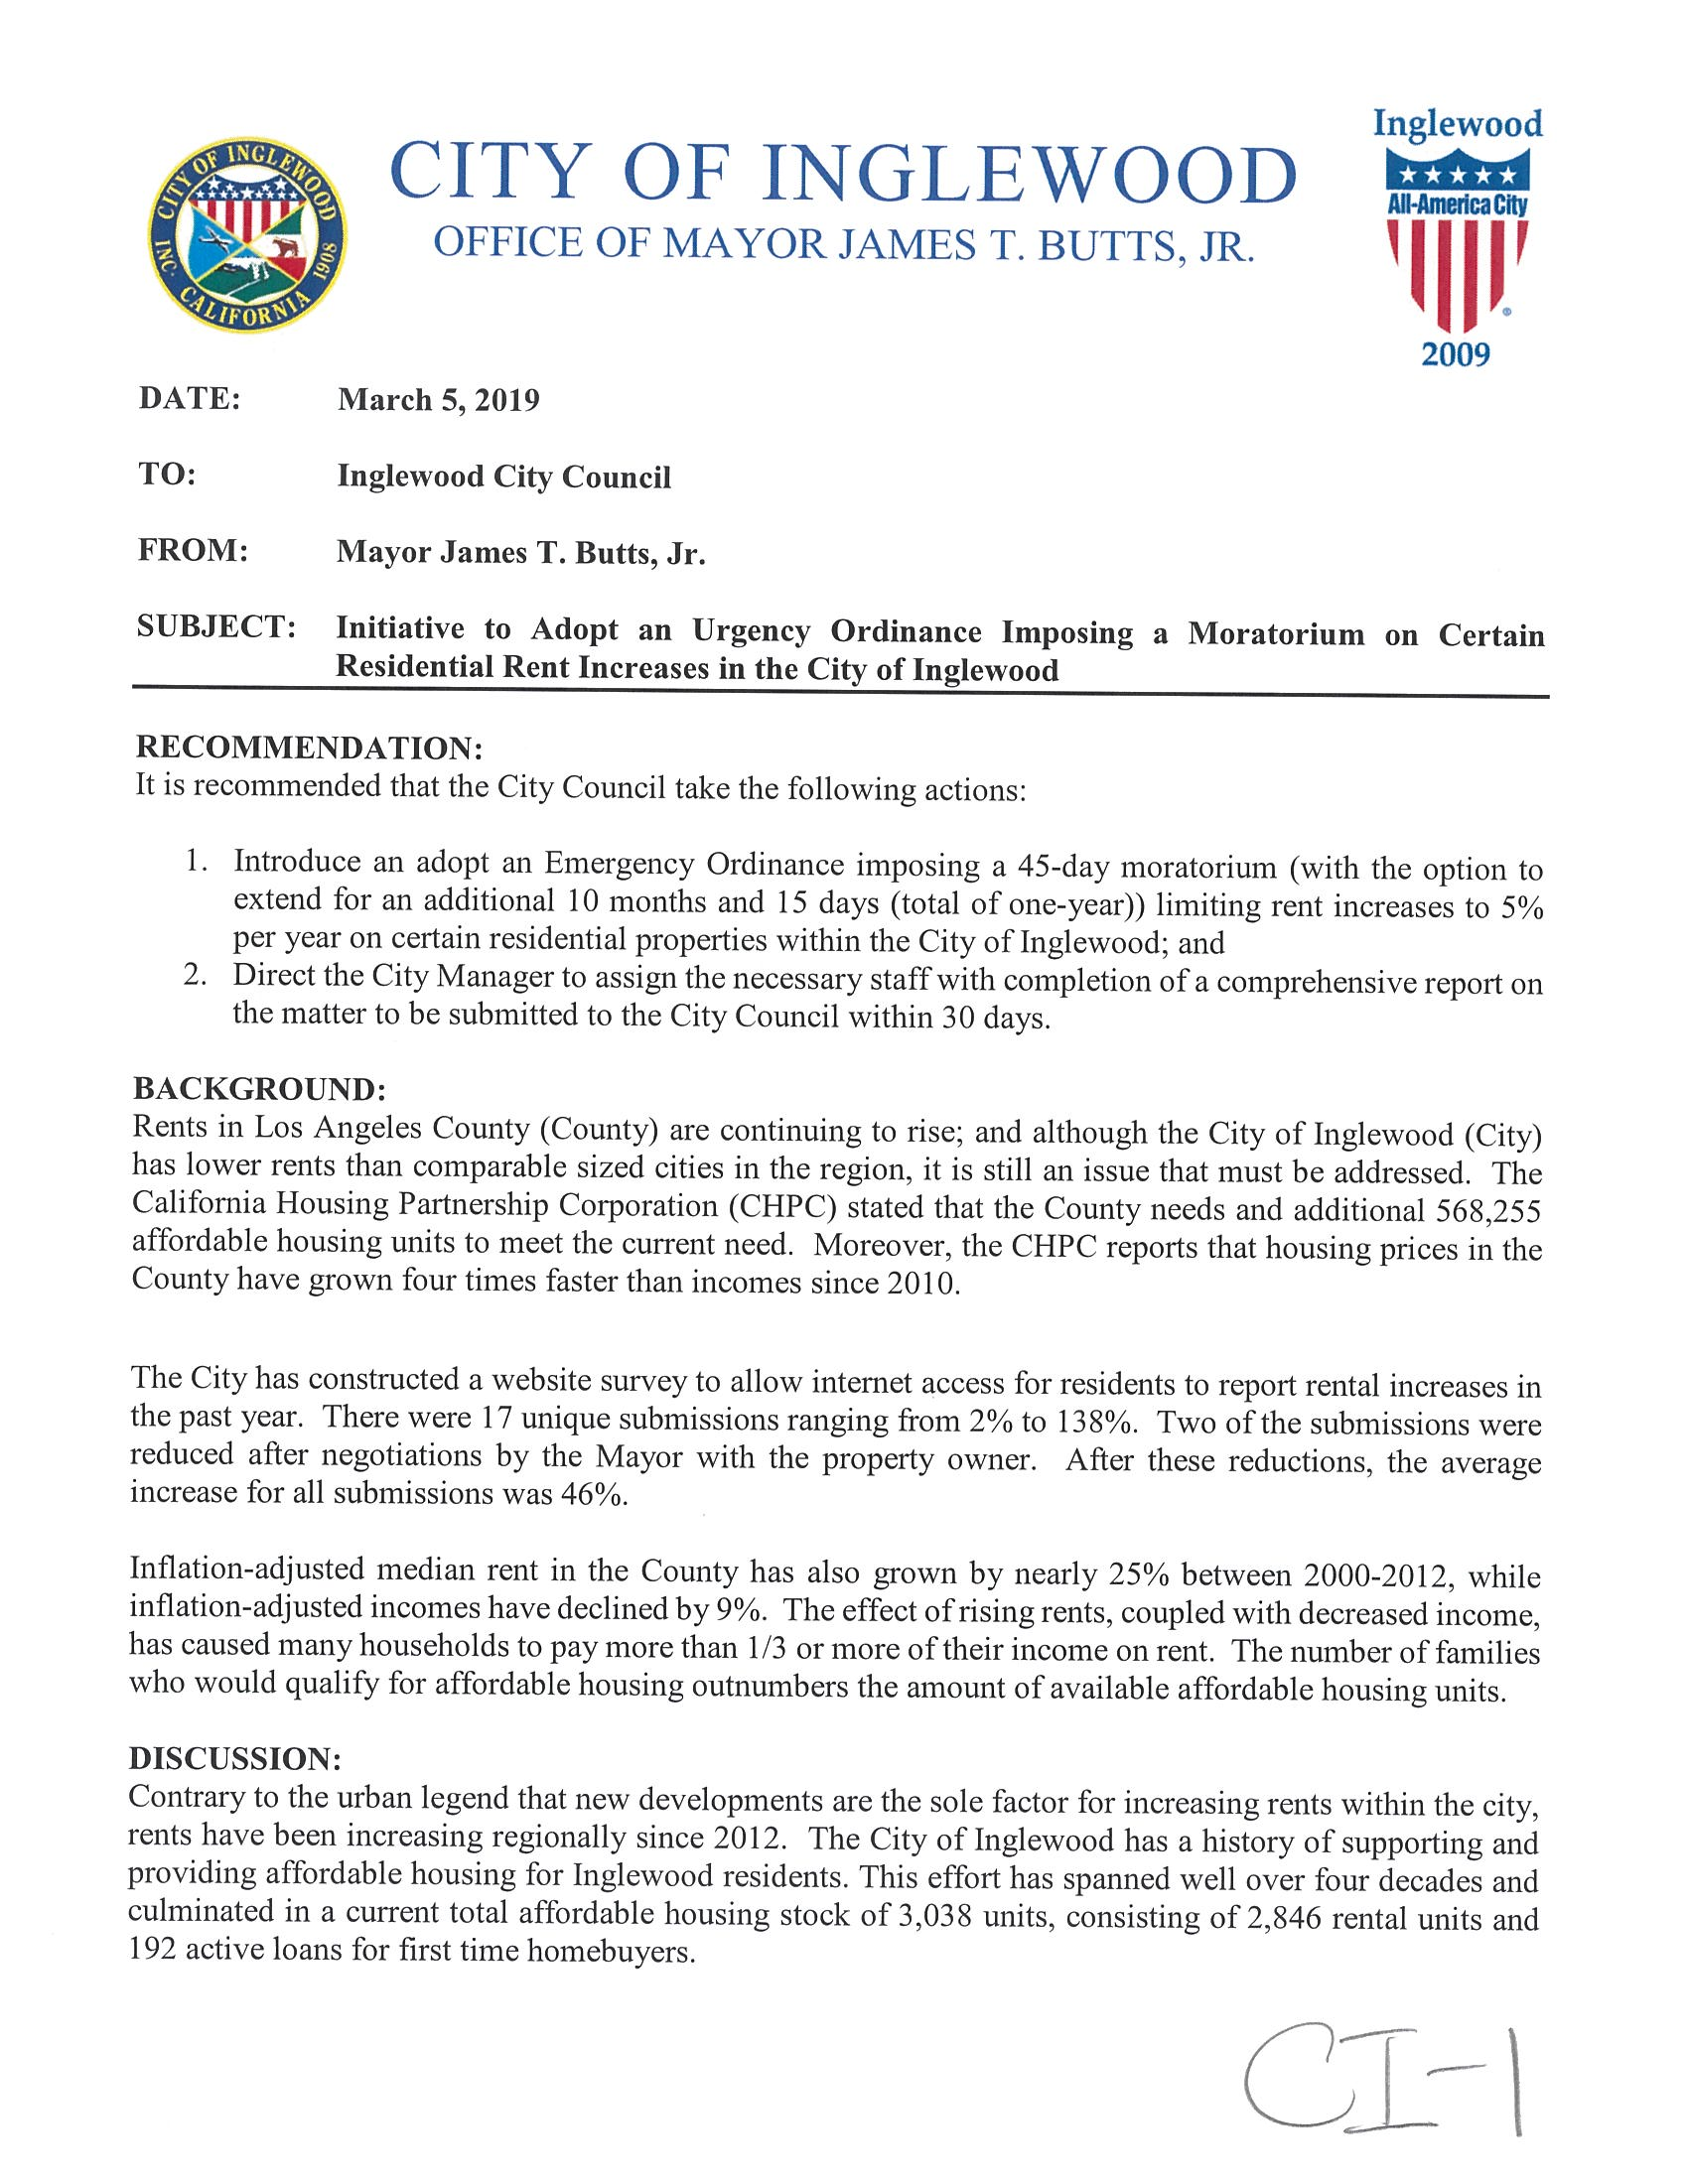 Mayor Butts letter_Page_1.jpg